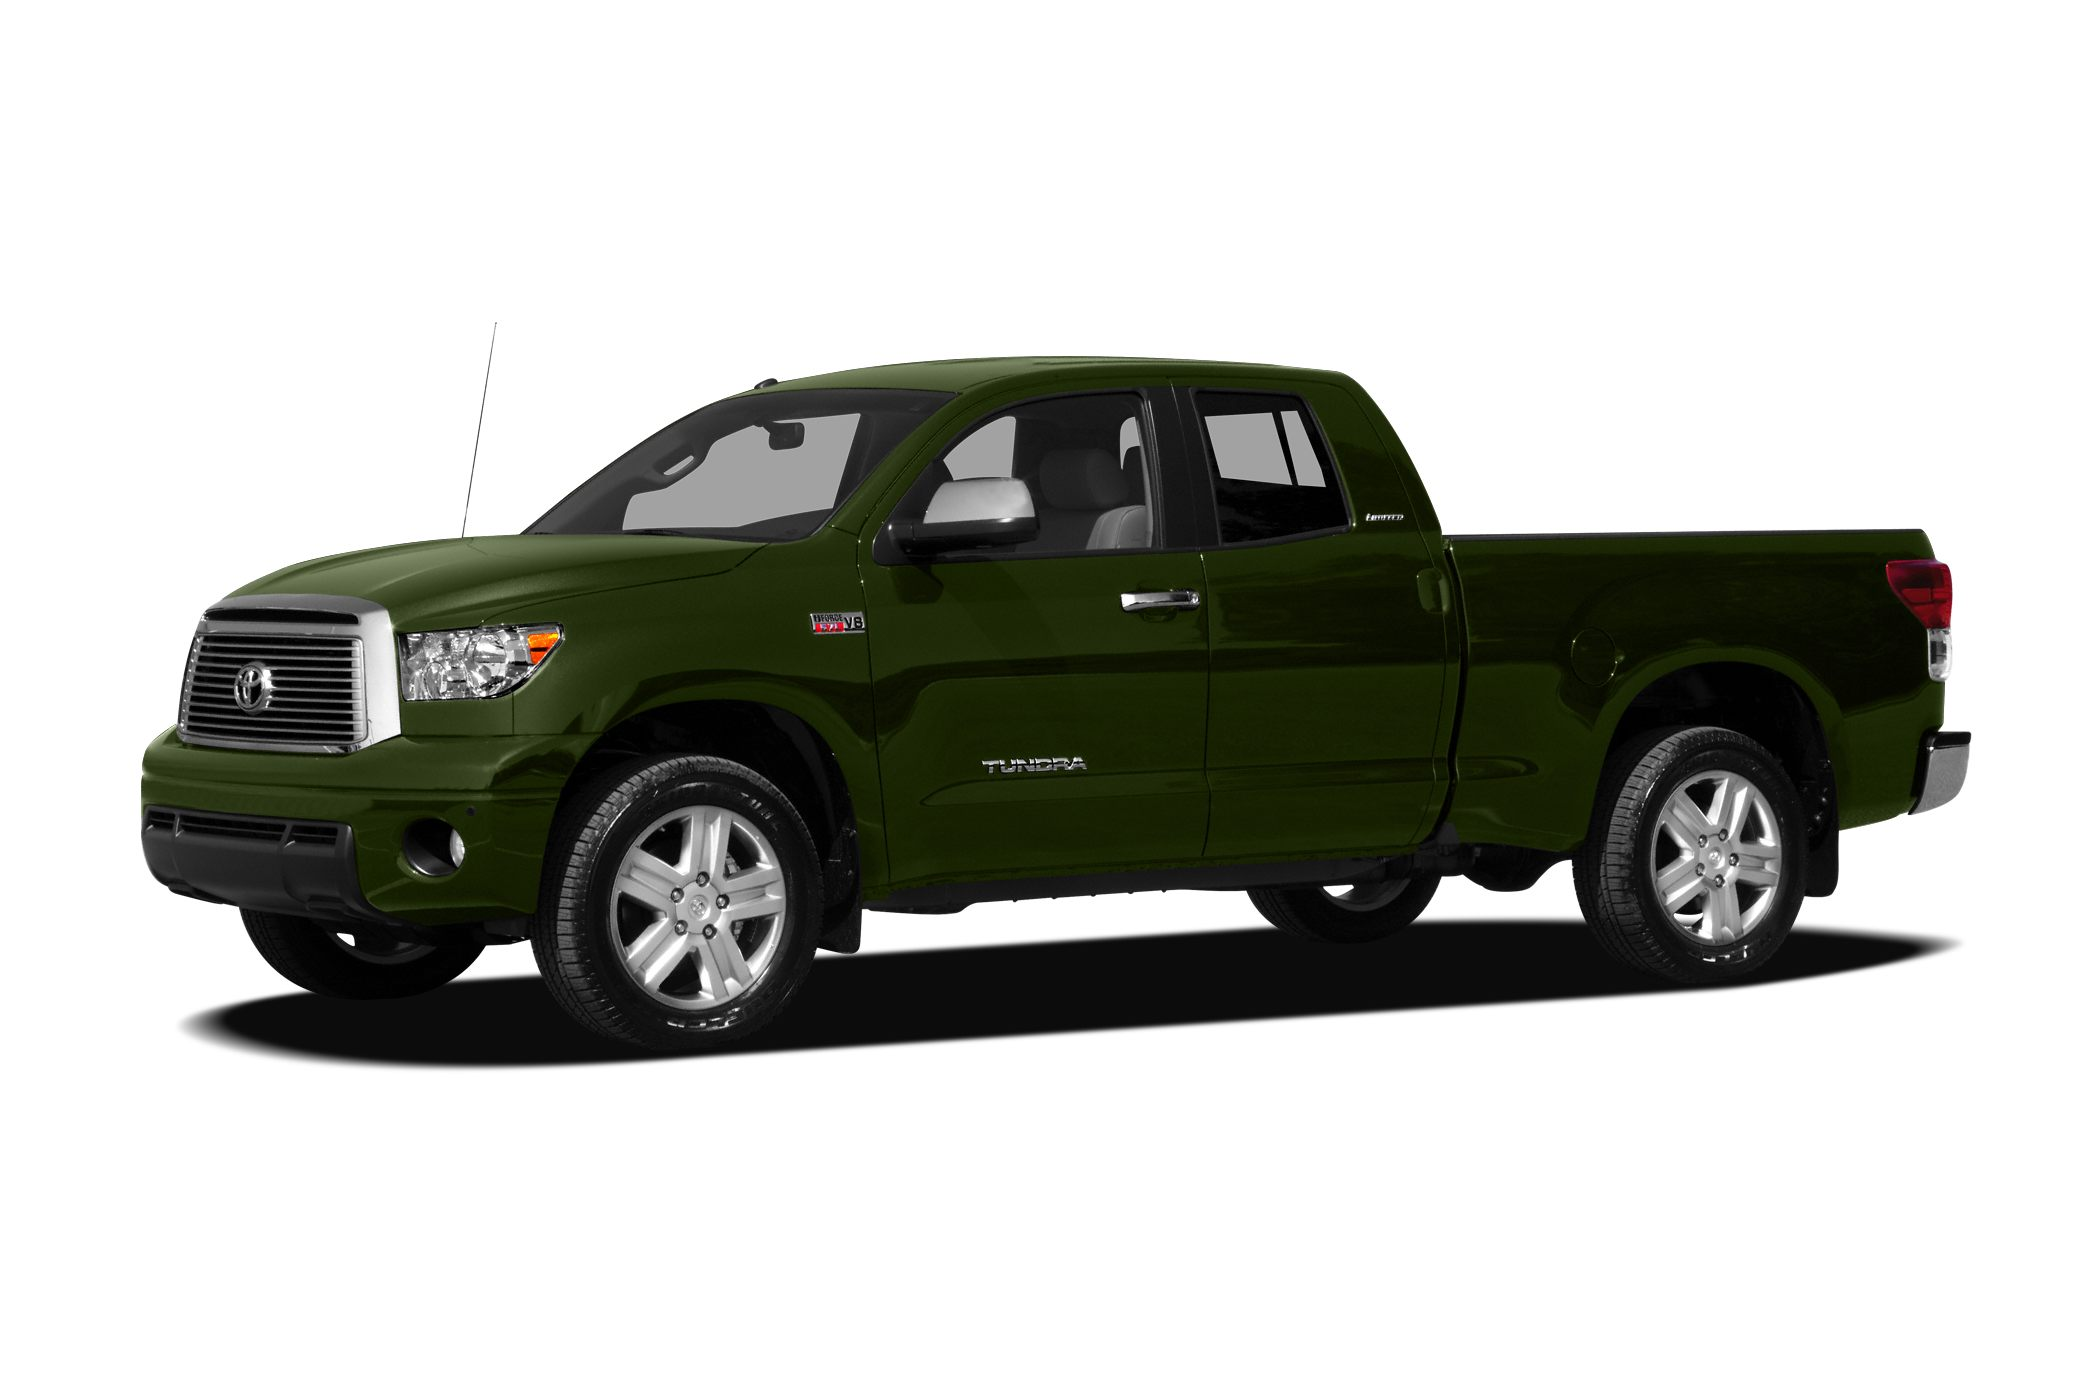 2010 Toyota Tundra Limited Crew Cab Pickup for sale in Minot for $29,995 with 66,745 miles